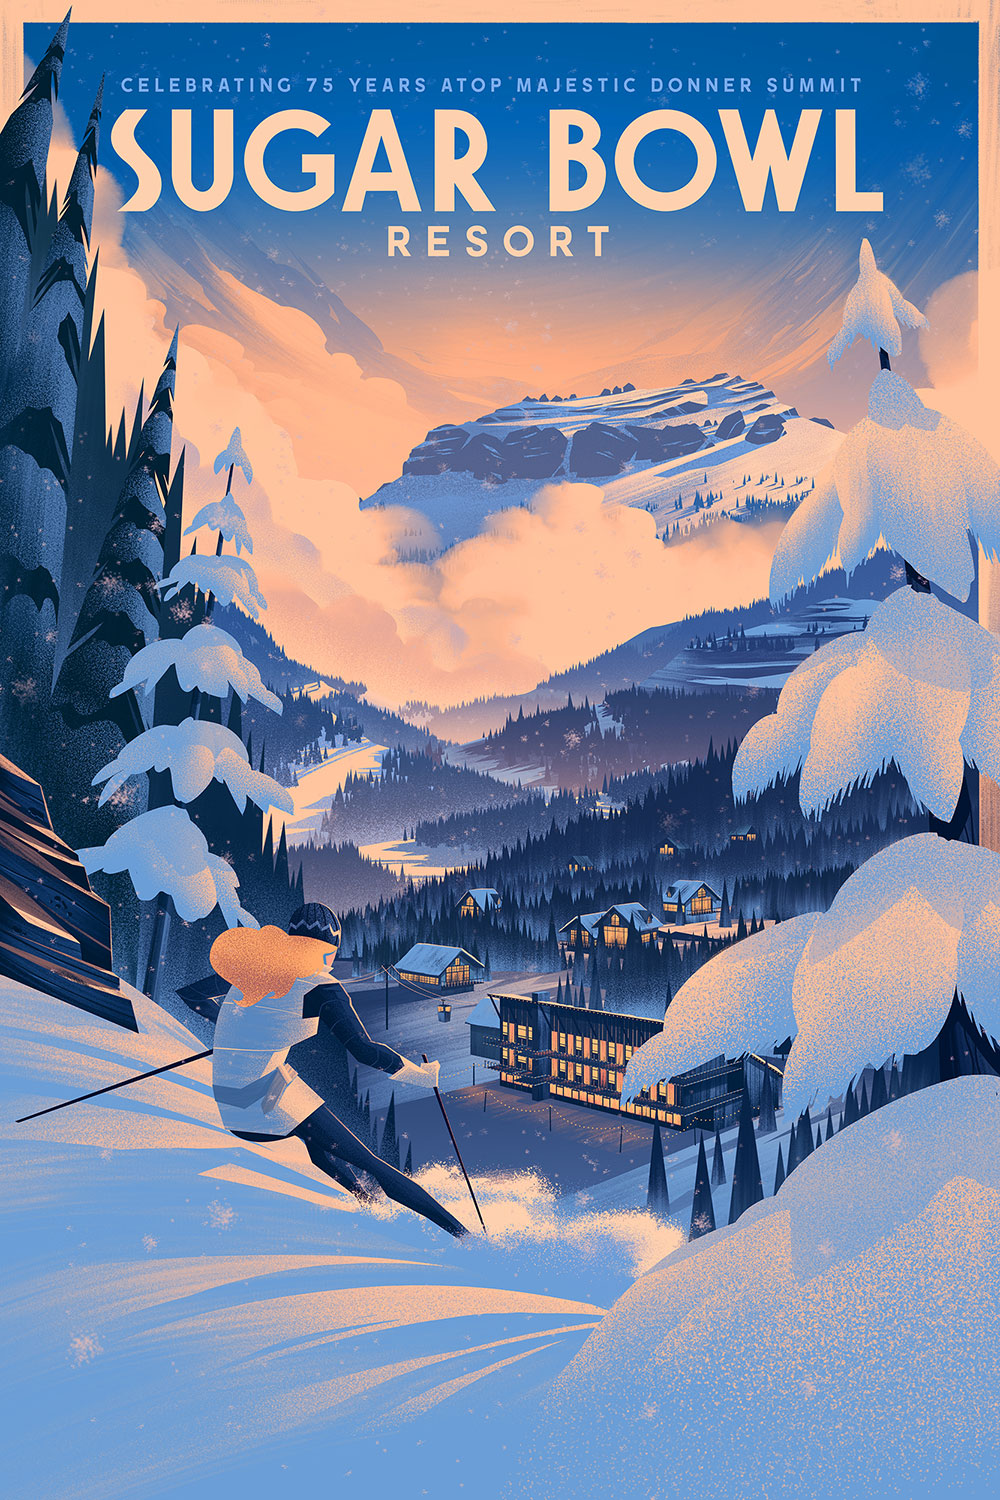 2014 · Sugar Bowl Resort Anniversary Poster